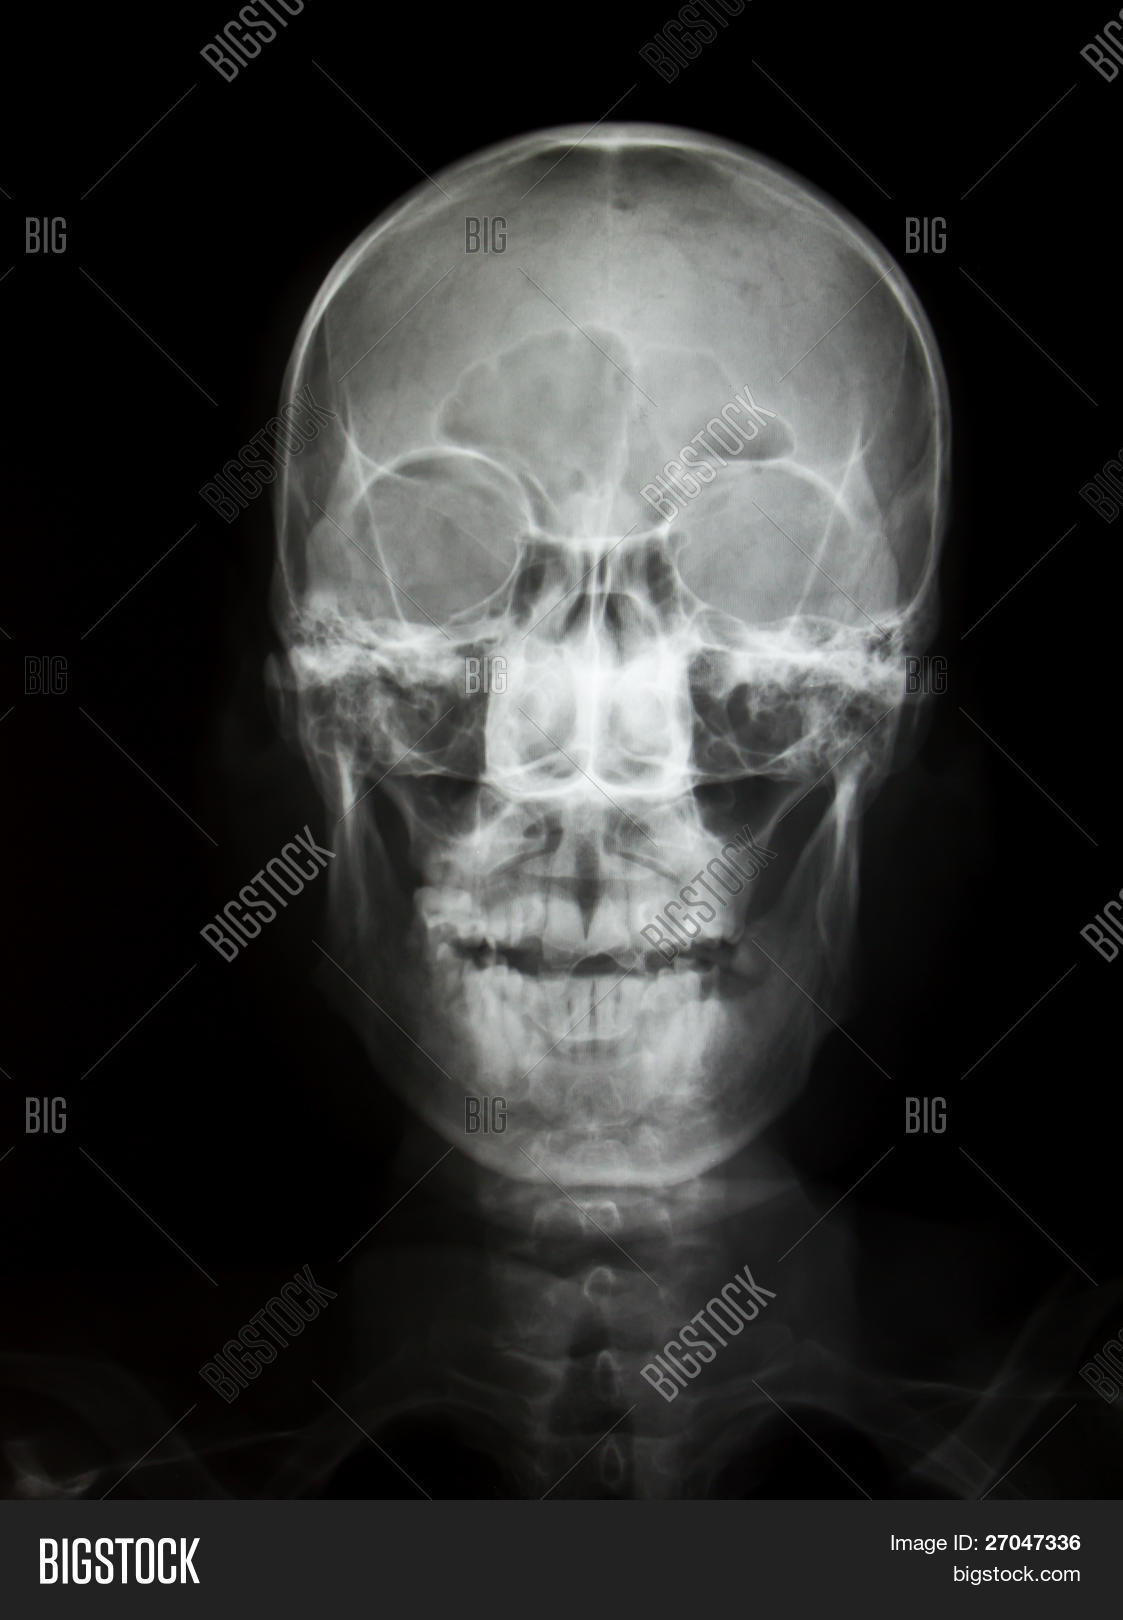 Front Face Skull X-ray Image & Photo (Free Trial) | Bigstock